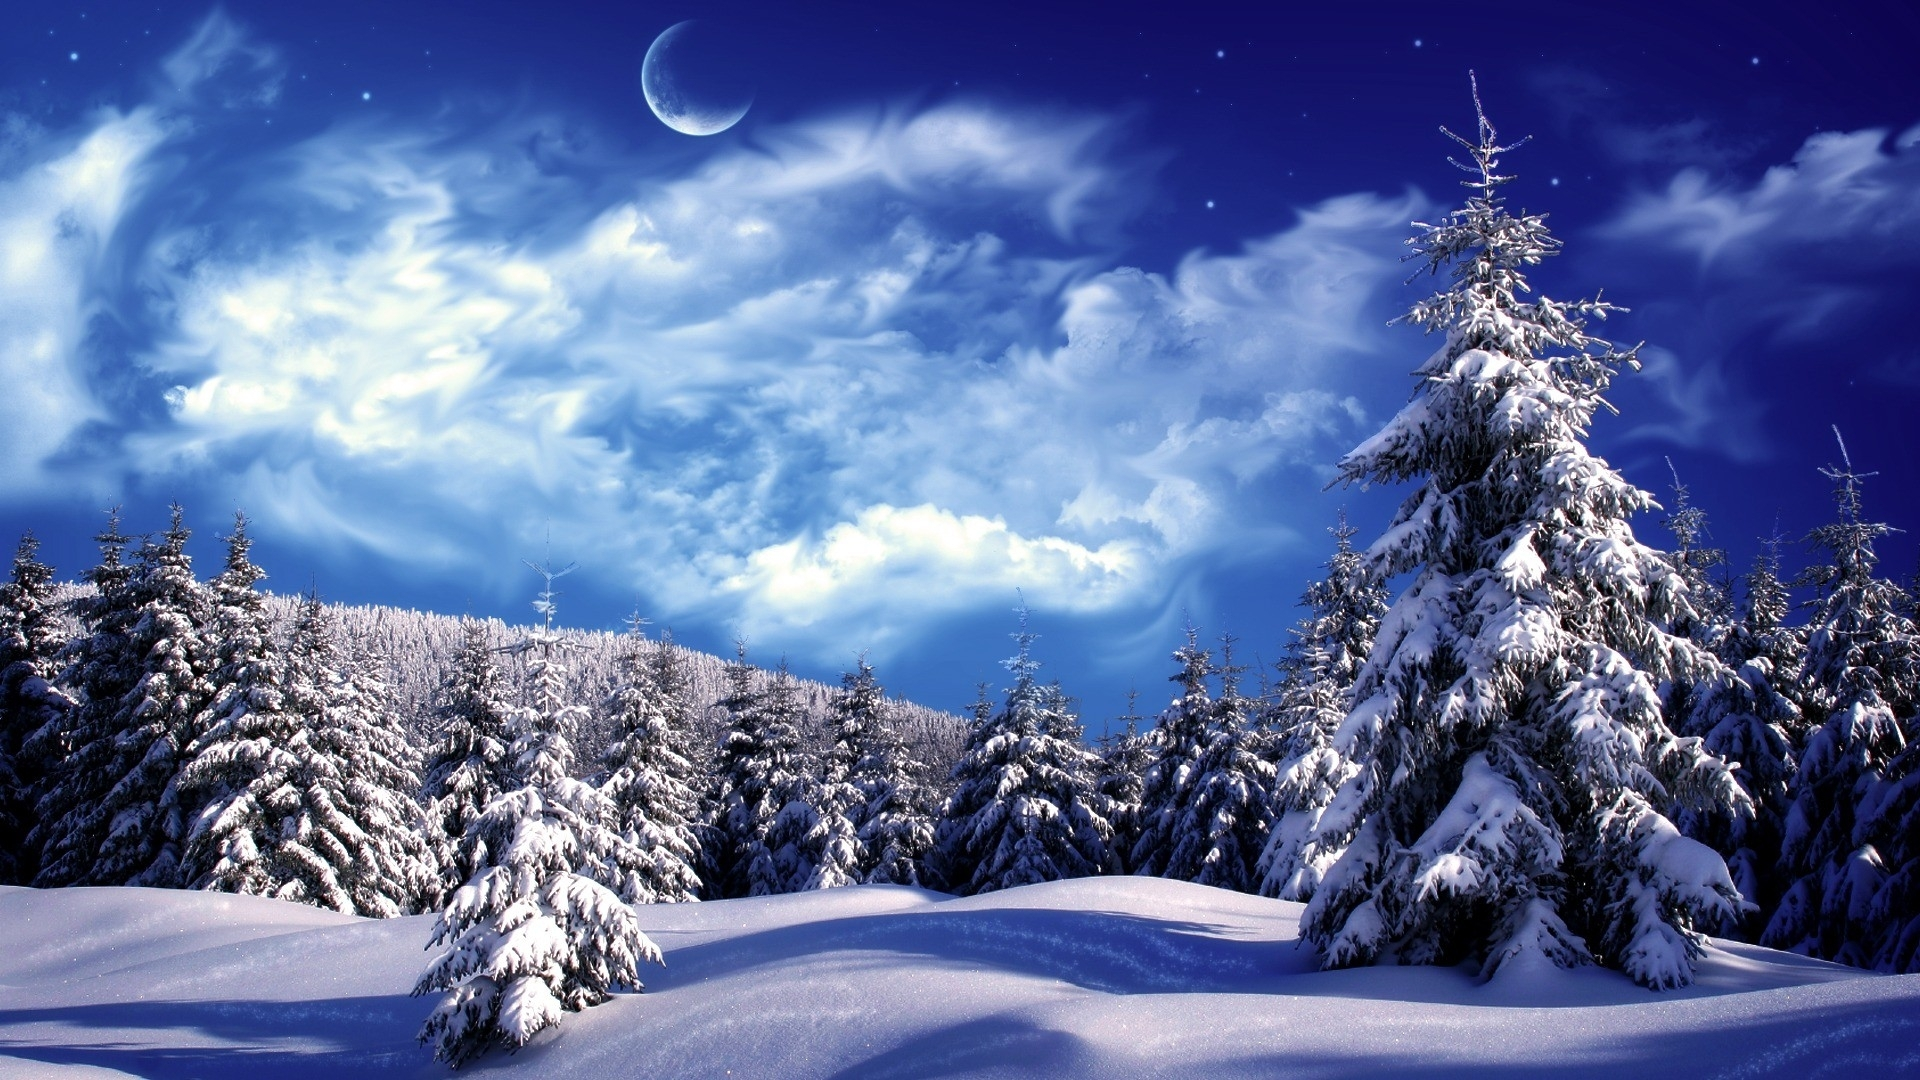 winter snow wallpaper backgrounds hd pics of pc amazing field in